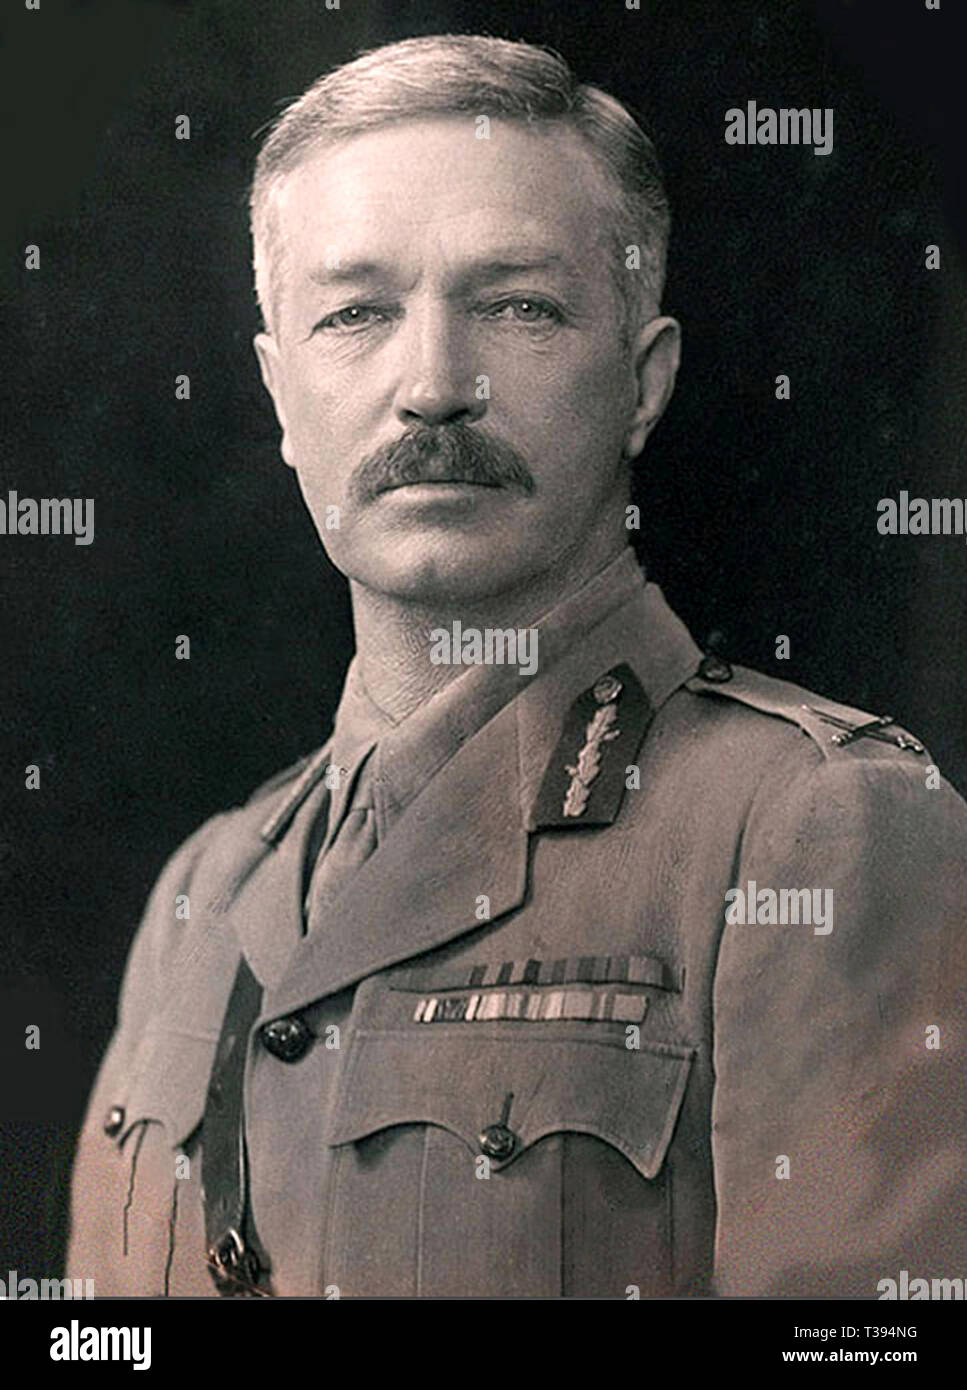 Reginald Dyer. Brigadier-General Dyer. Military Commander Amritsar 1919. Brigadier General Reginald Edward Harry Dyer (1864-1927), British Indian Army officer. He was responsible for the Jallianwala Bagh massacre (13 April 1919) in Amritsar, in the British India province of Punjab. Colonel Reginald Edward Harry Dyer, an officer of the British Indian Army who, as a temporary brigadier-general, was responsible for the Jallianwala Bagh massacre in Amritsar - Stock Image